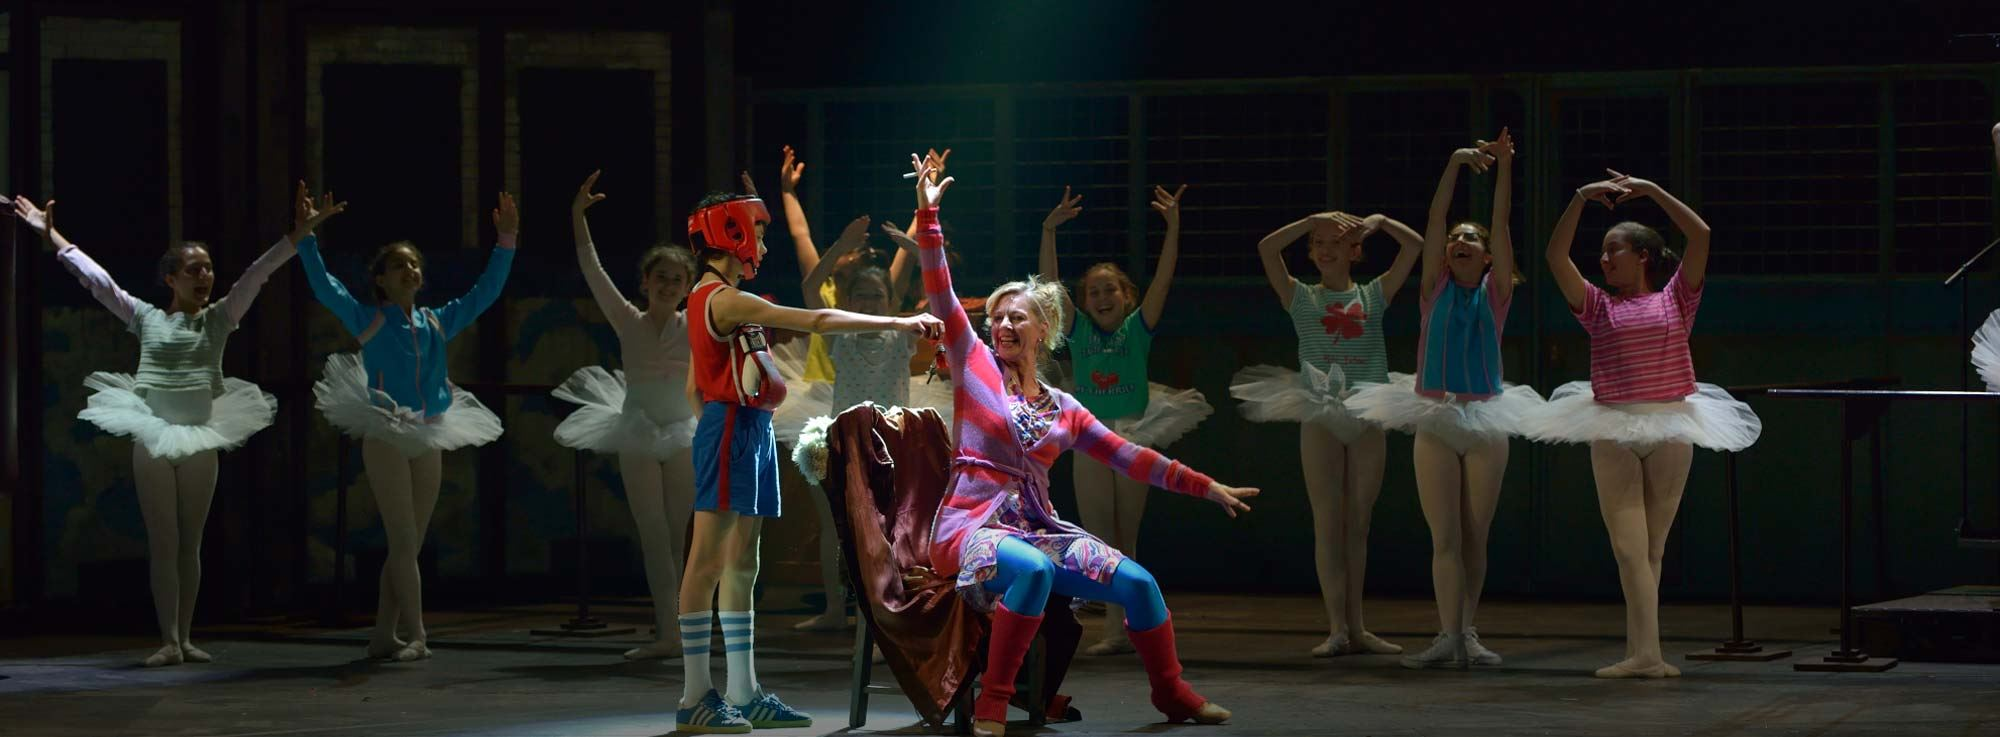 Barletta: Billy Elliot, il Musical